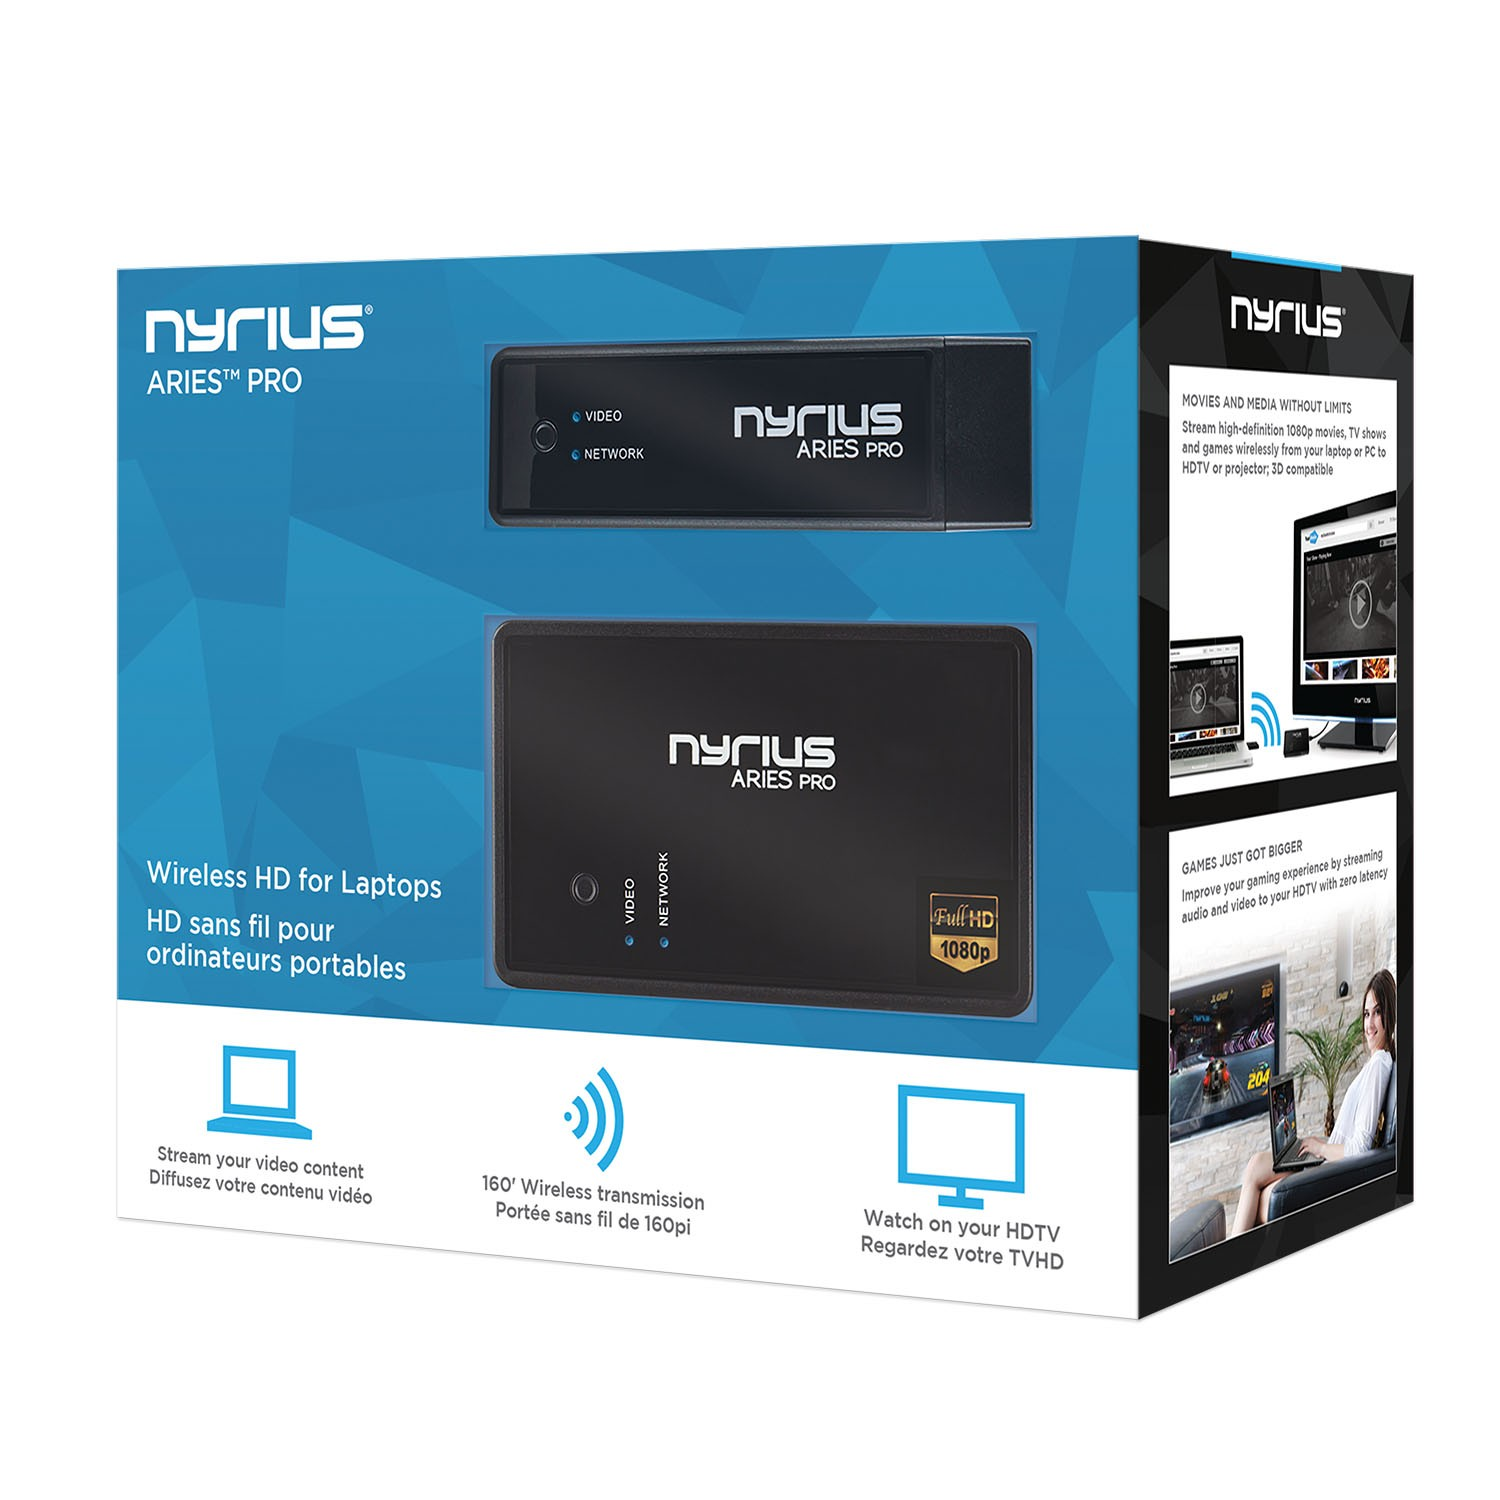 ARIES Pro Digital Wireless HDMI Transmitter and Receiver System | Nyrius